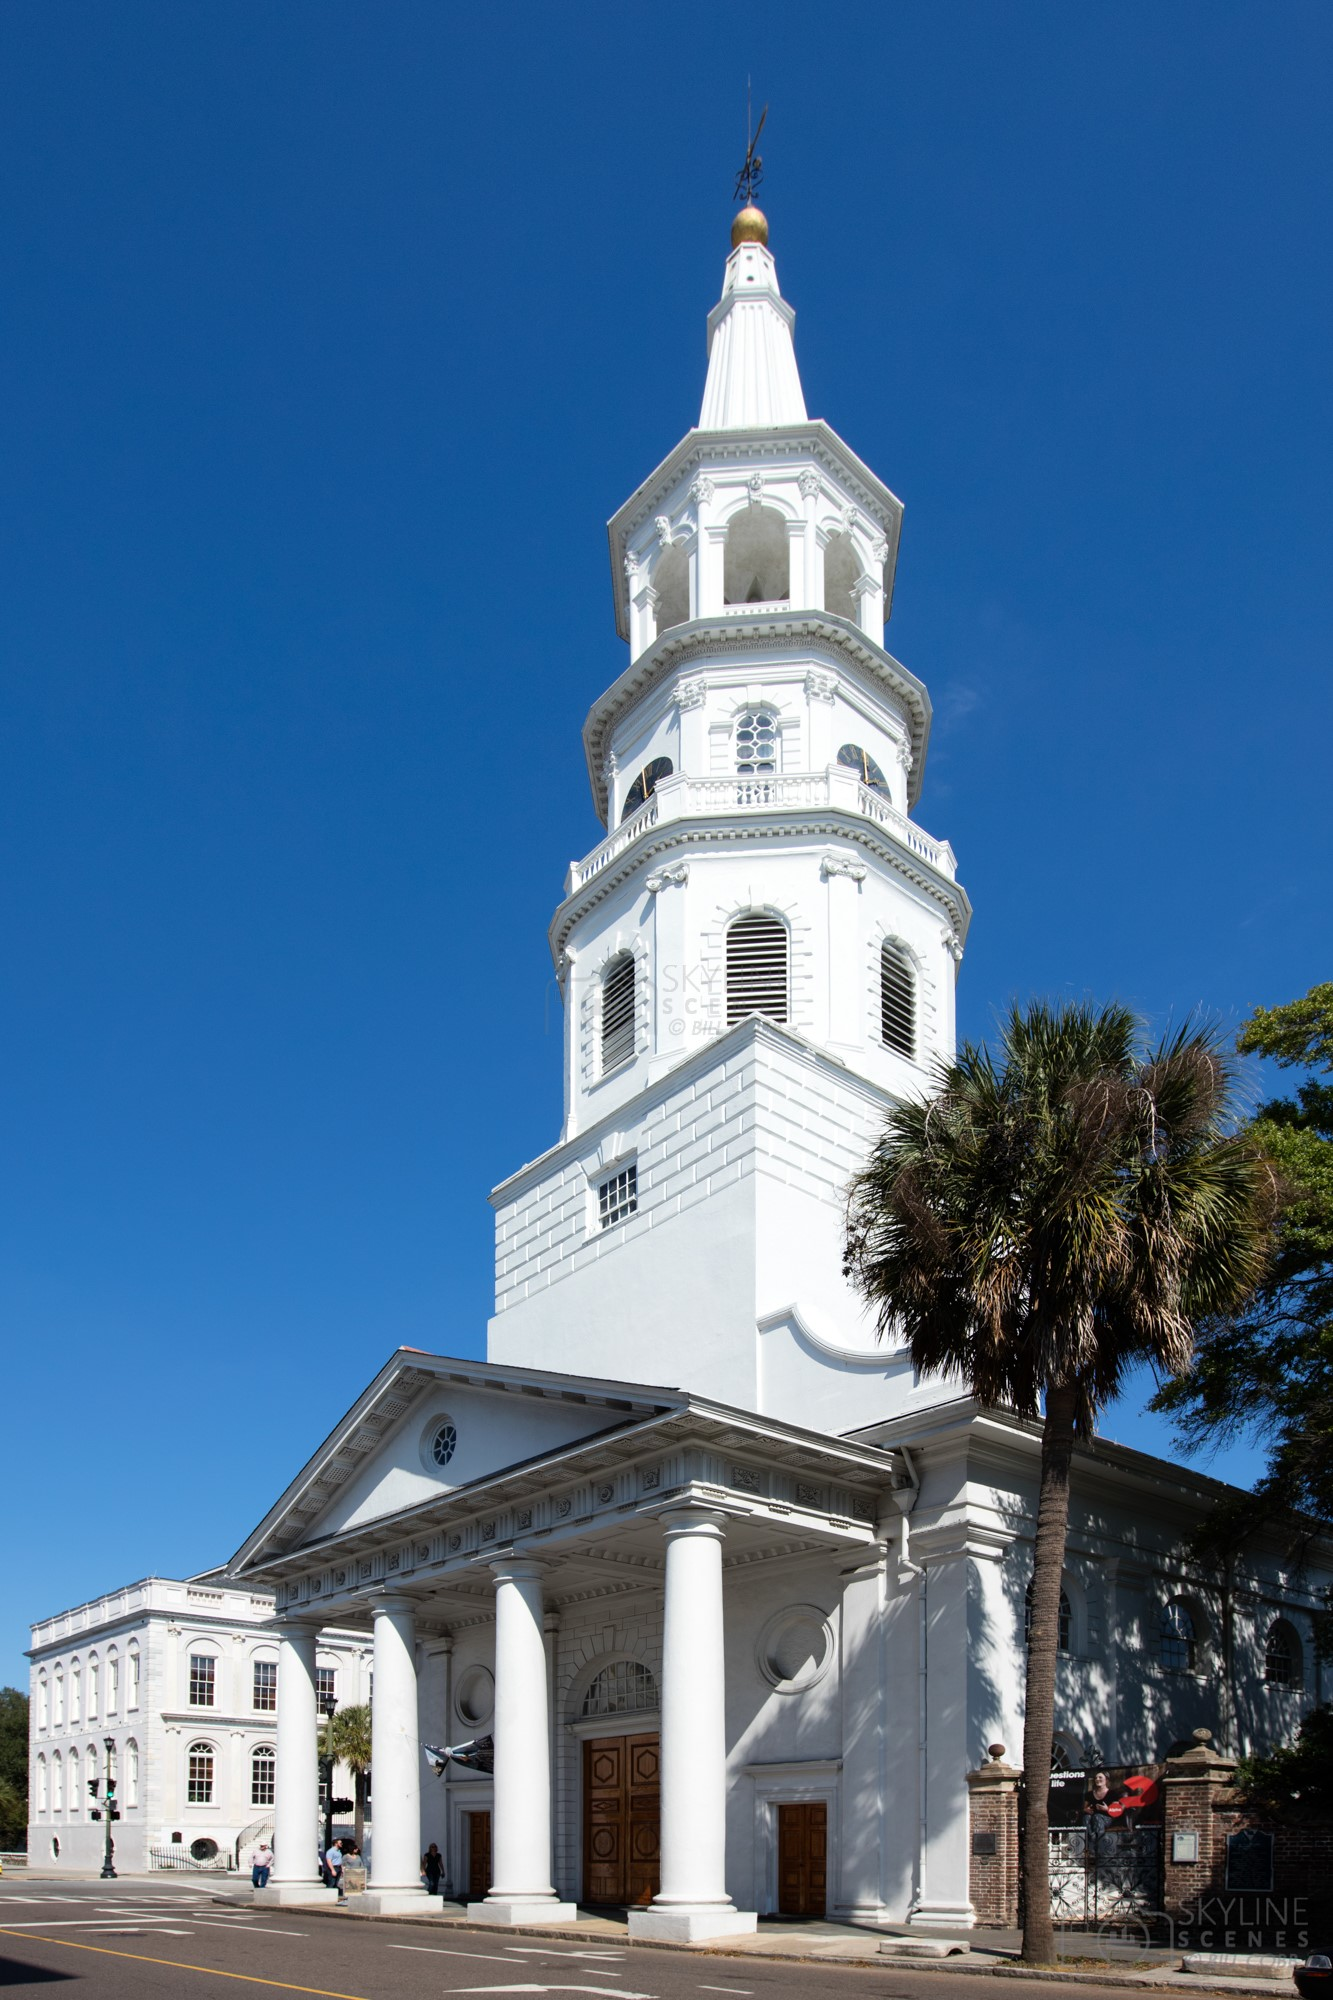 Sain Michael's Church in Historic Downtown Charleston, South Carolina